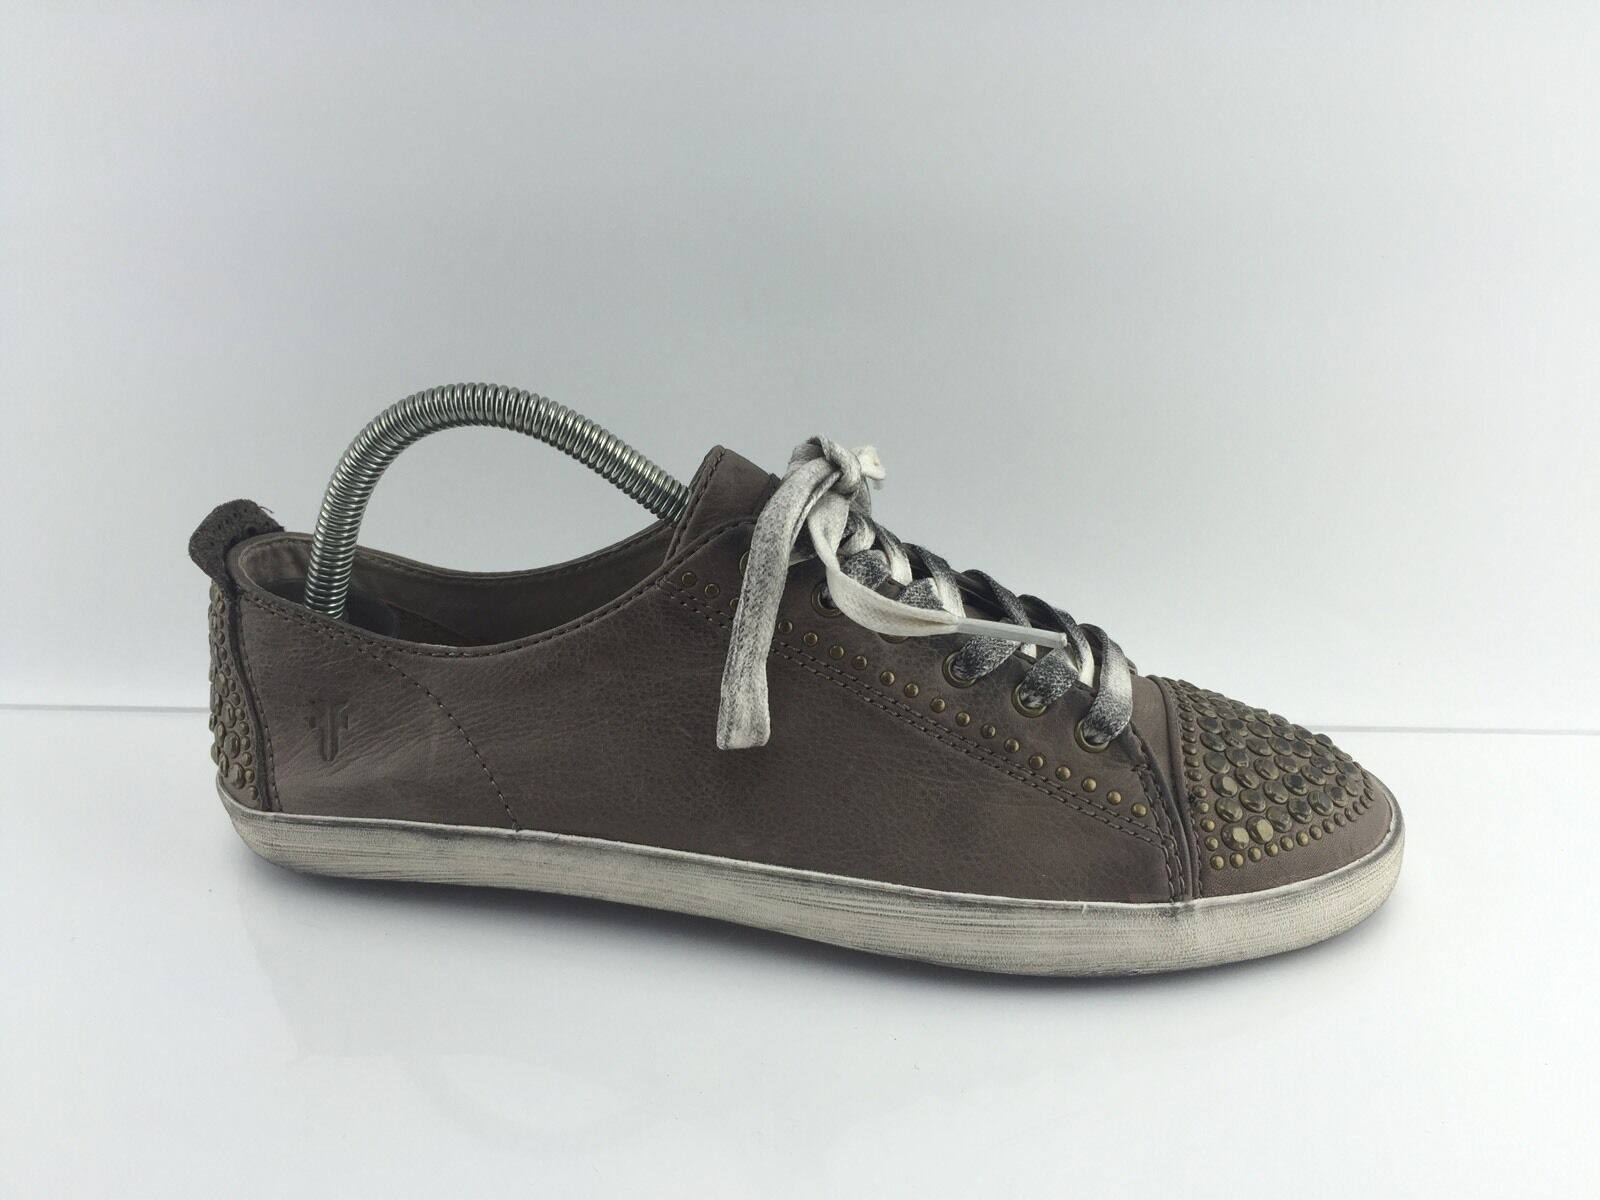 Frye Women's Grey/taupe Leather Shoes 9.5 M